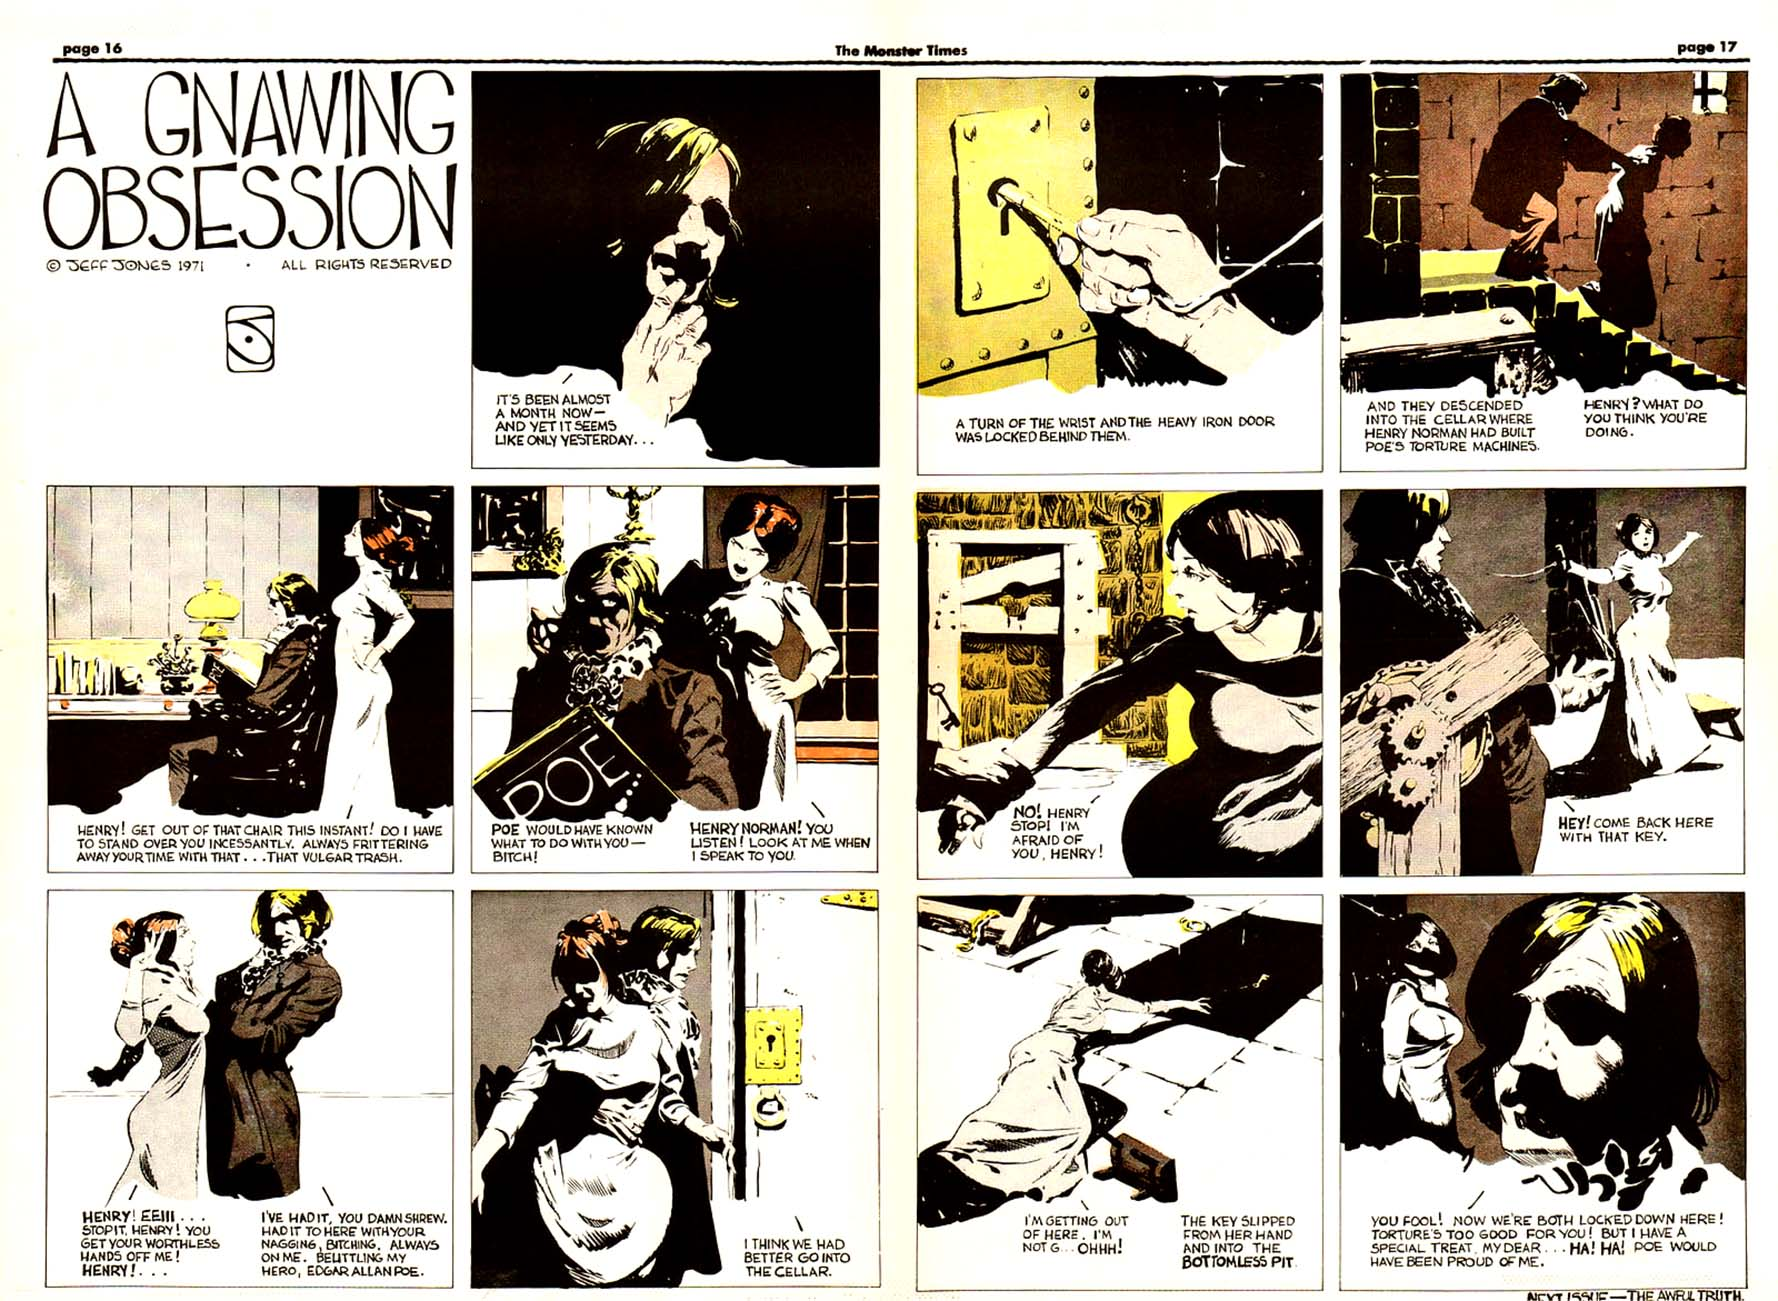 A Gnawing Obsession, from The Monster Times #4-5 1972